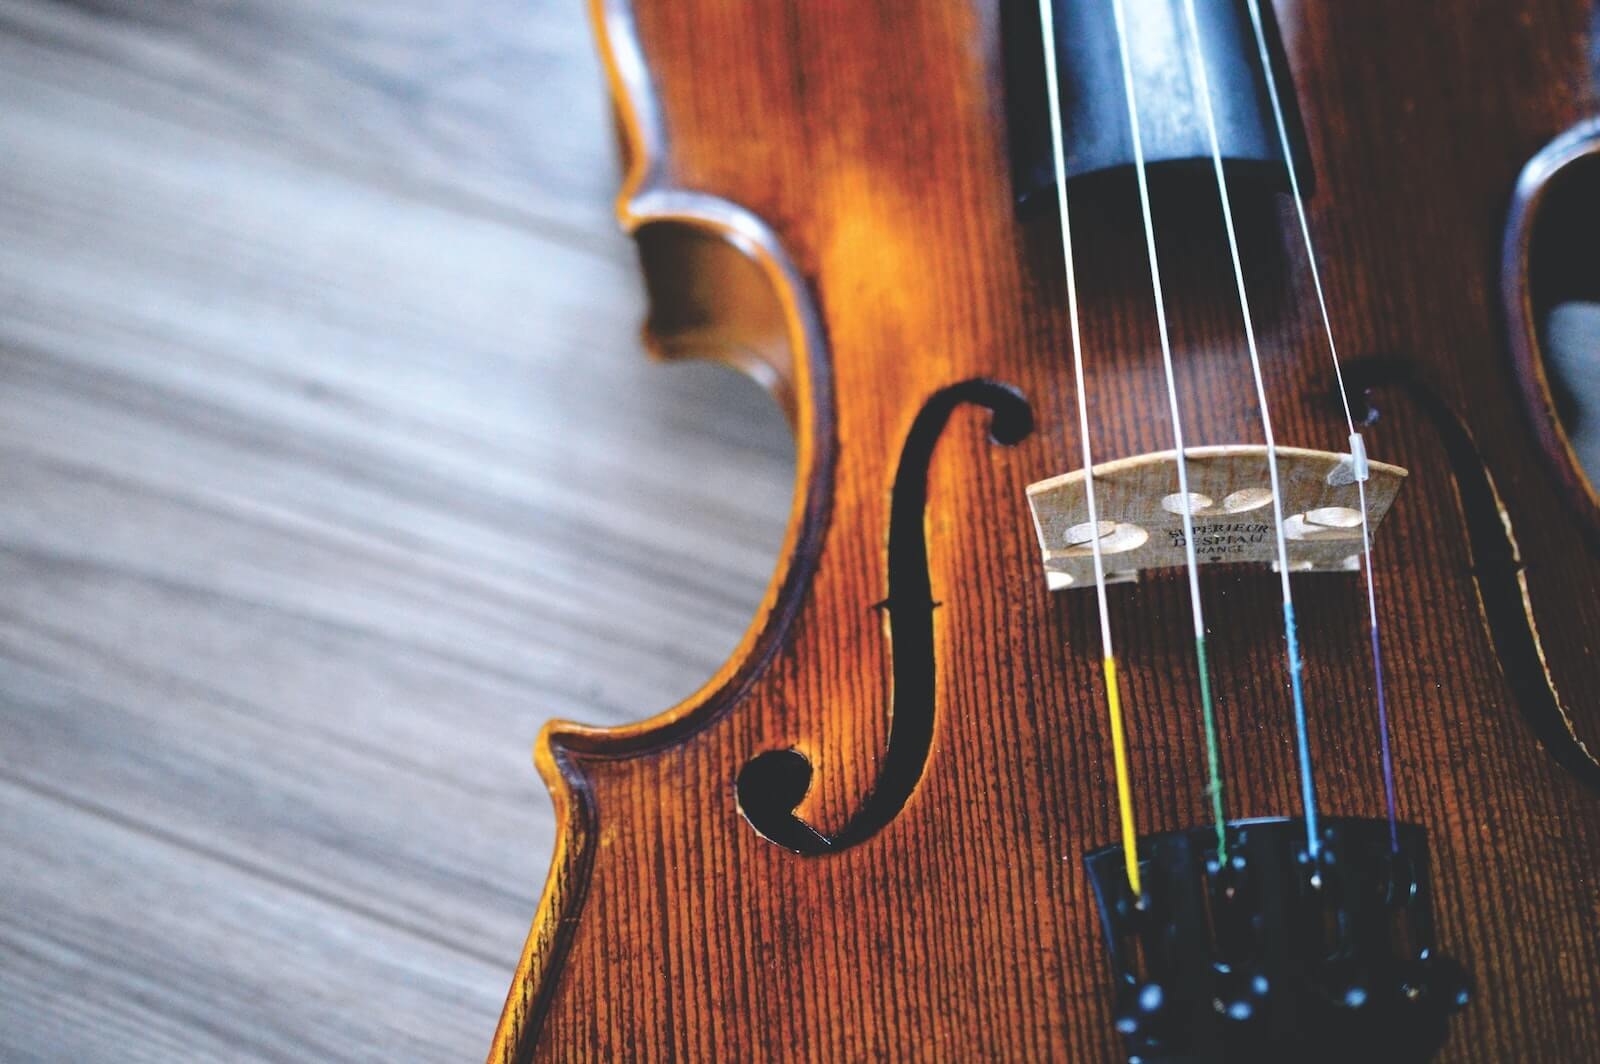 Photo of a Violin by Providence Doucet